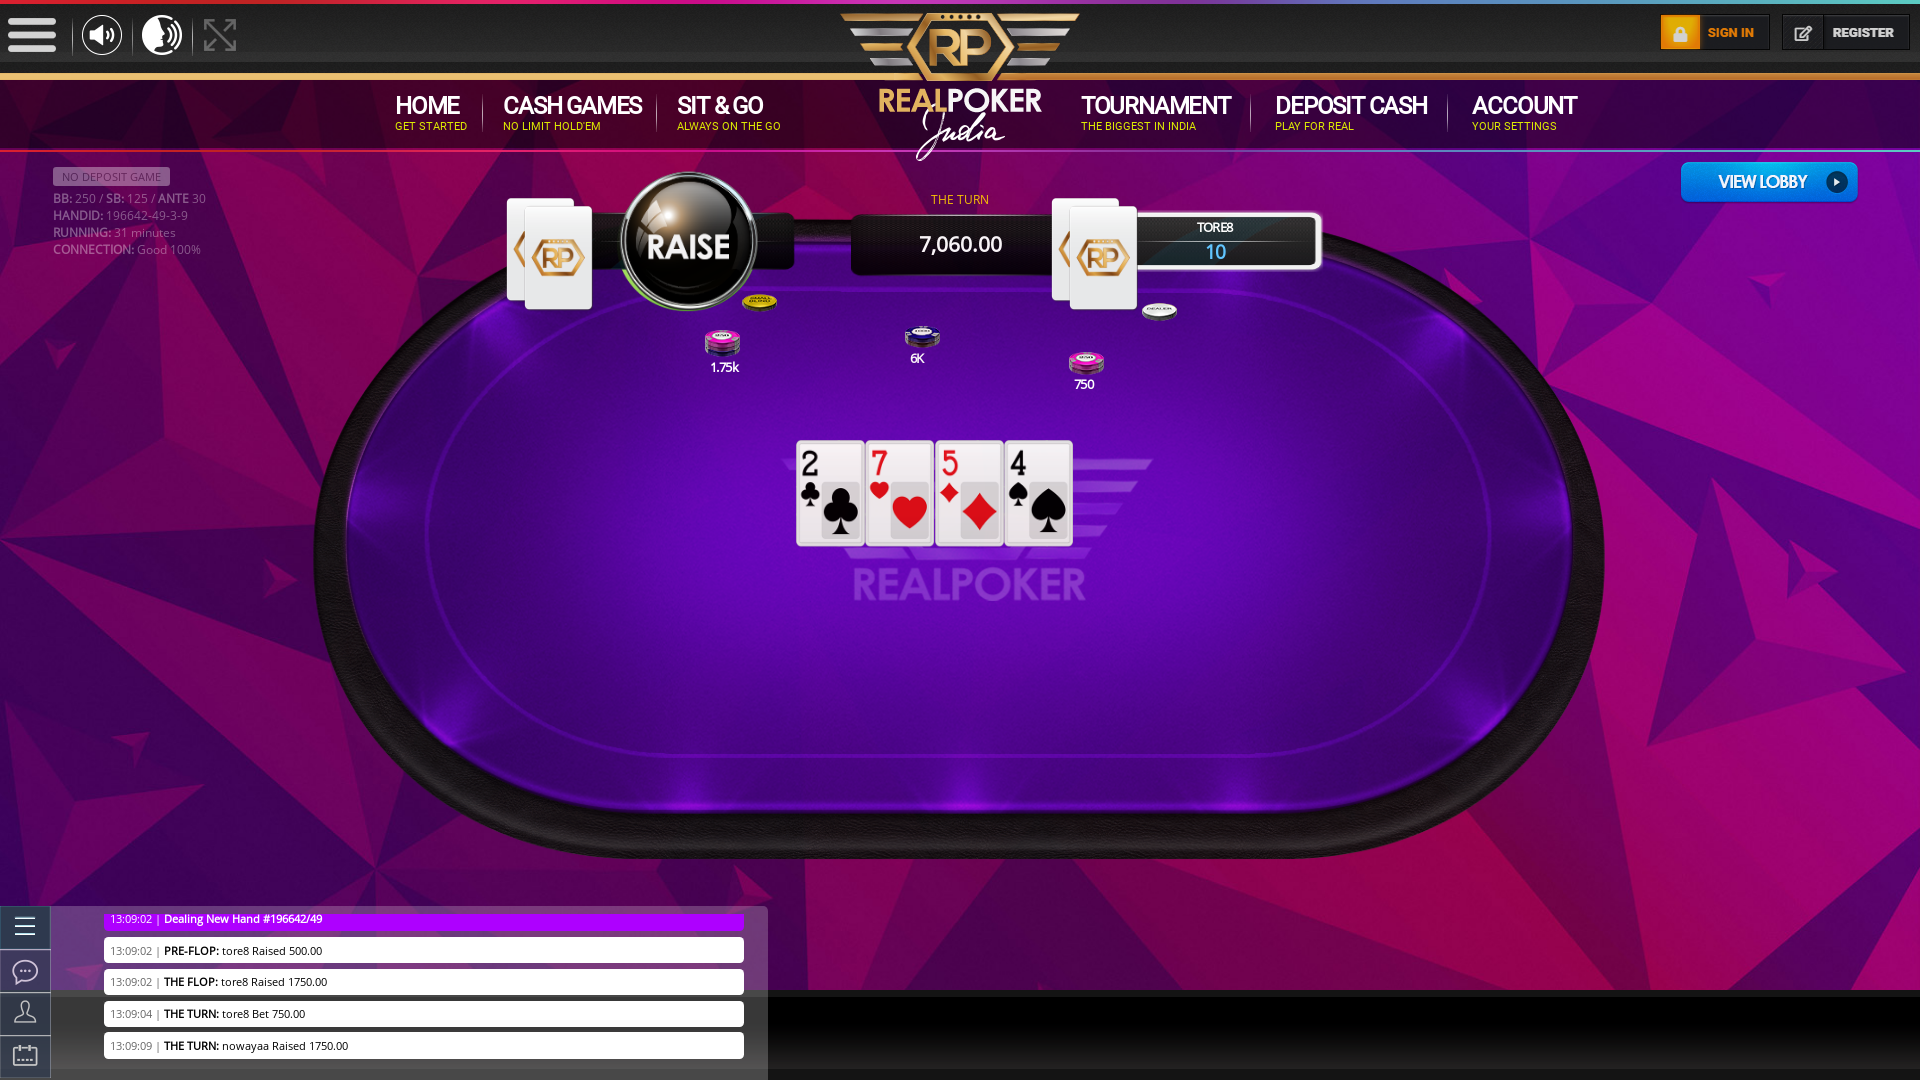 Online poker on a 10 player table in the 30th minute match up